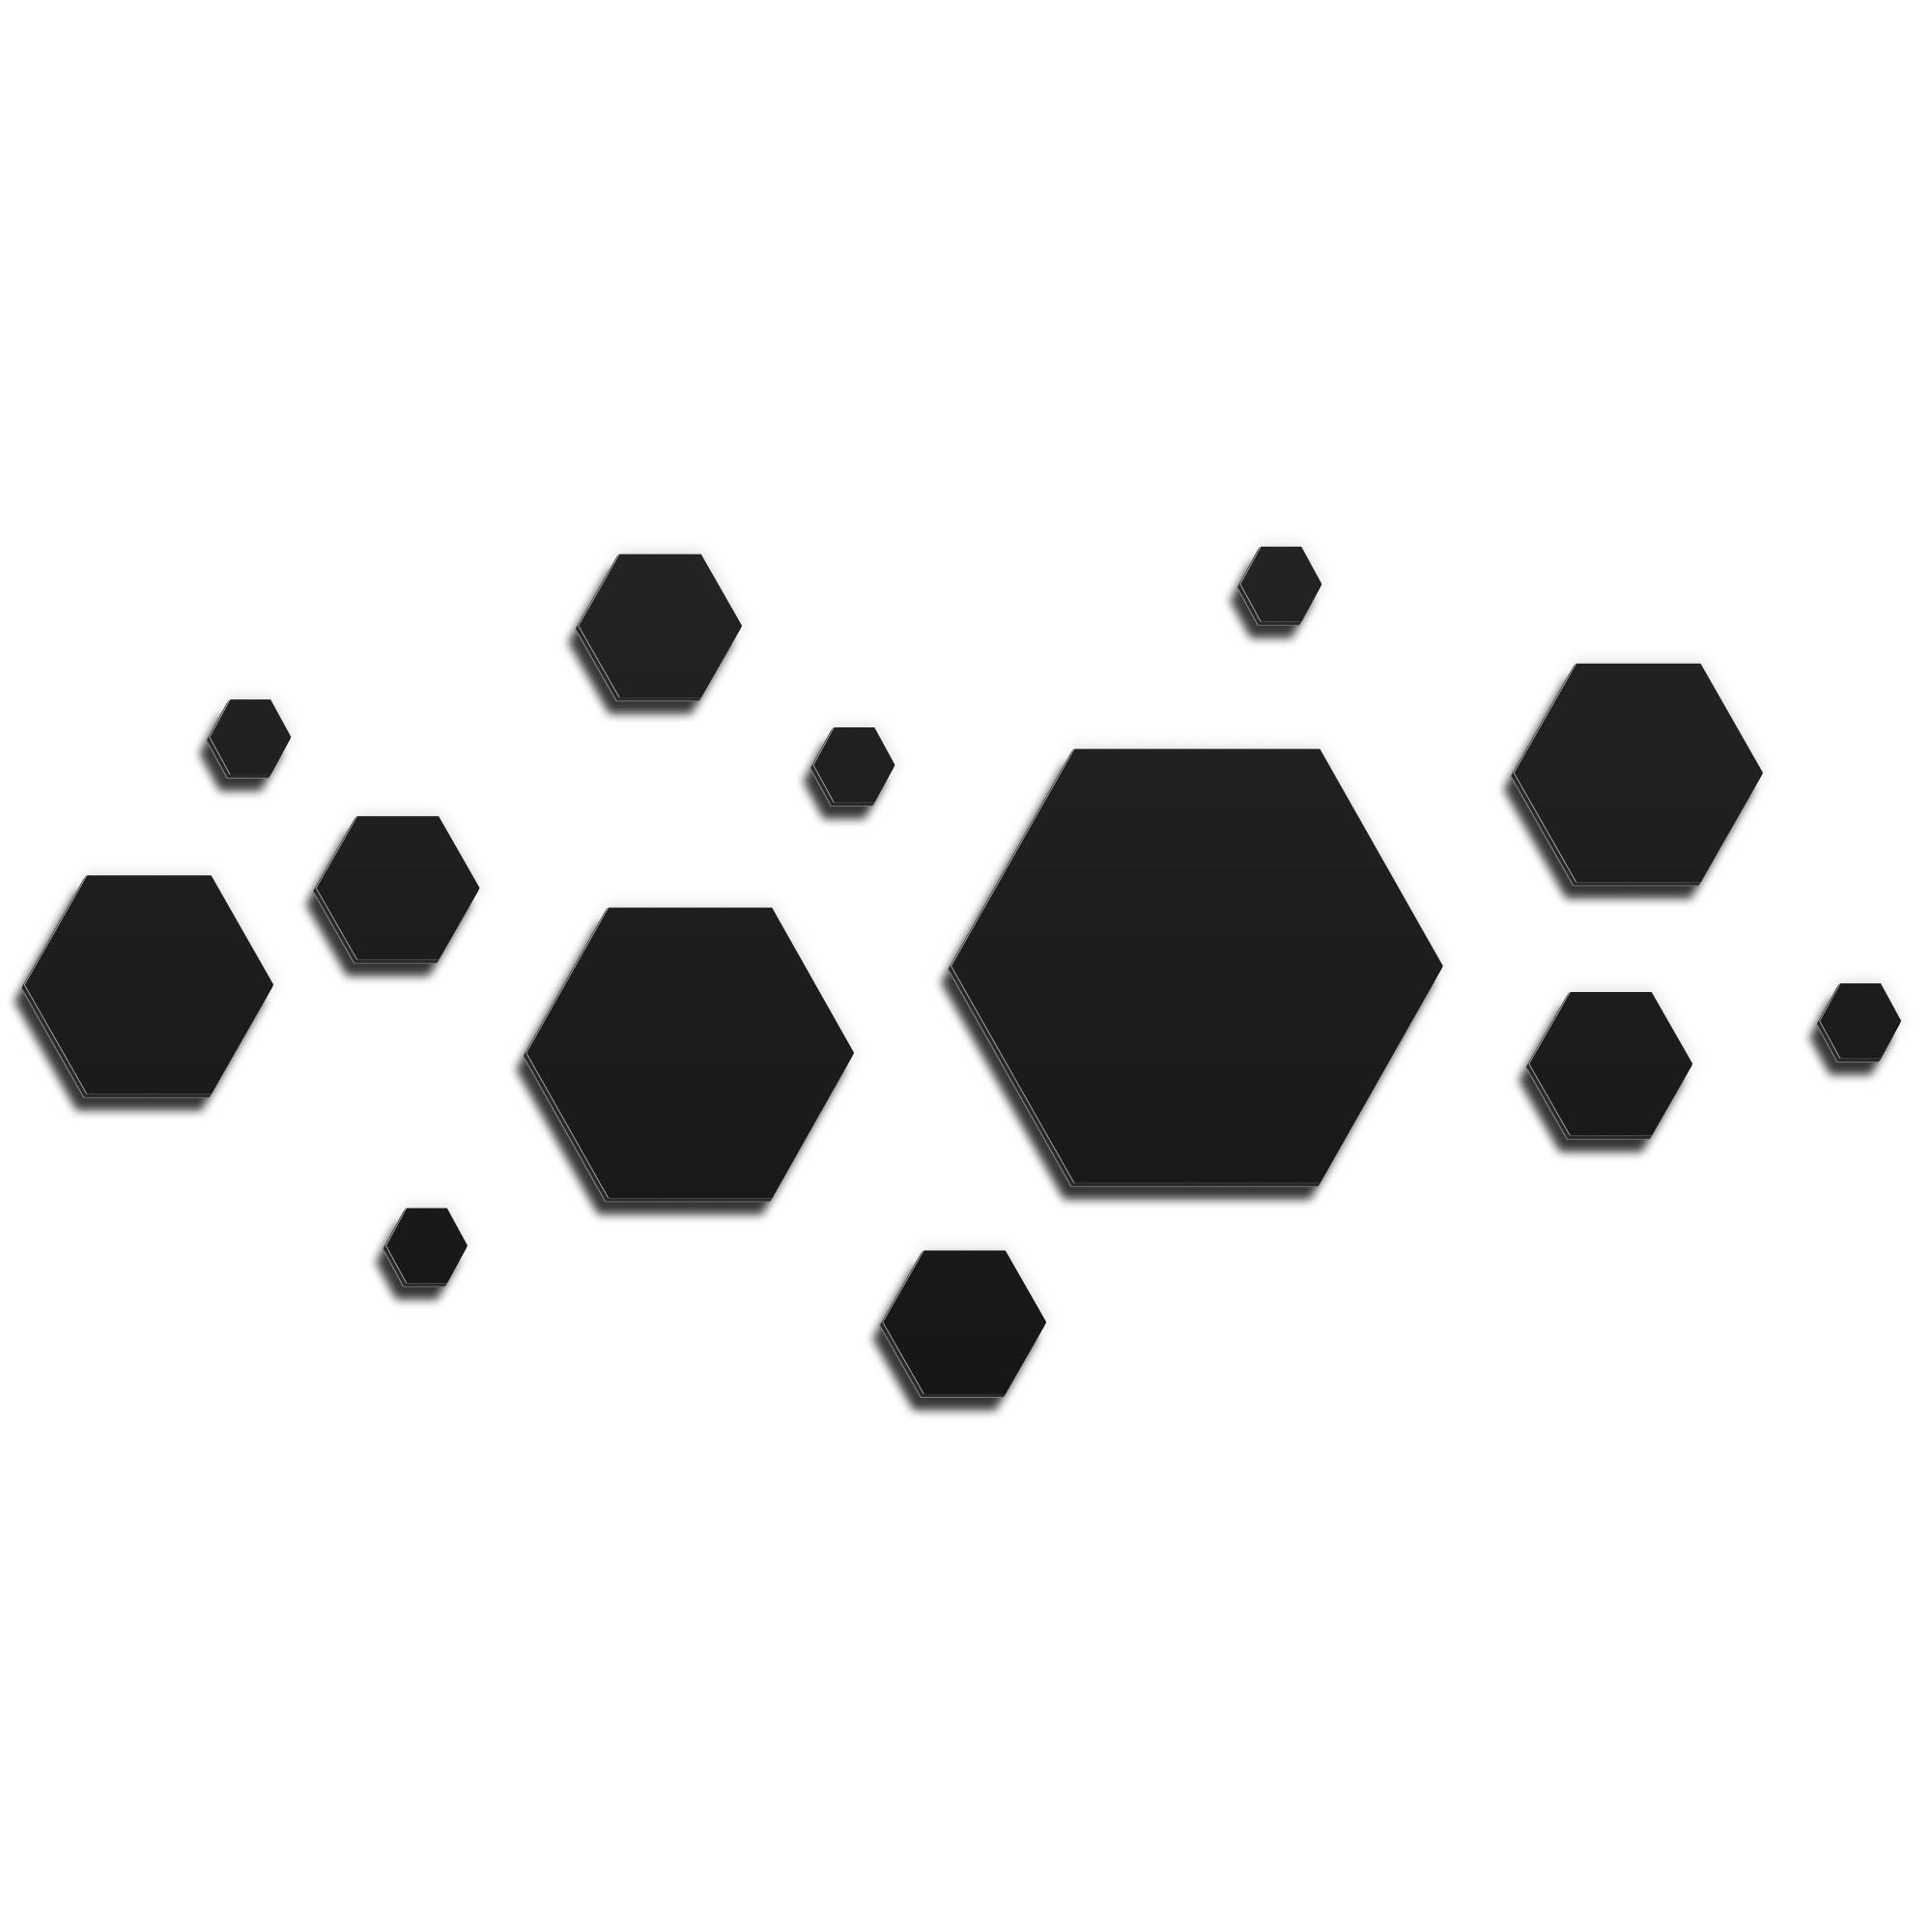 NAY 'Honeycomb Black' 70in x 32in Hexagons Abstract Art on Aluminum Composite